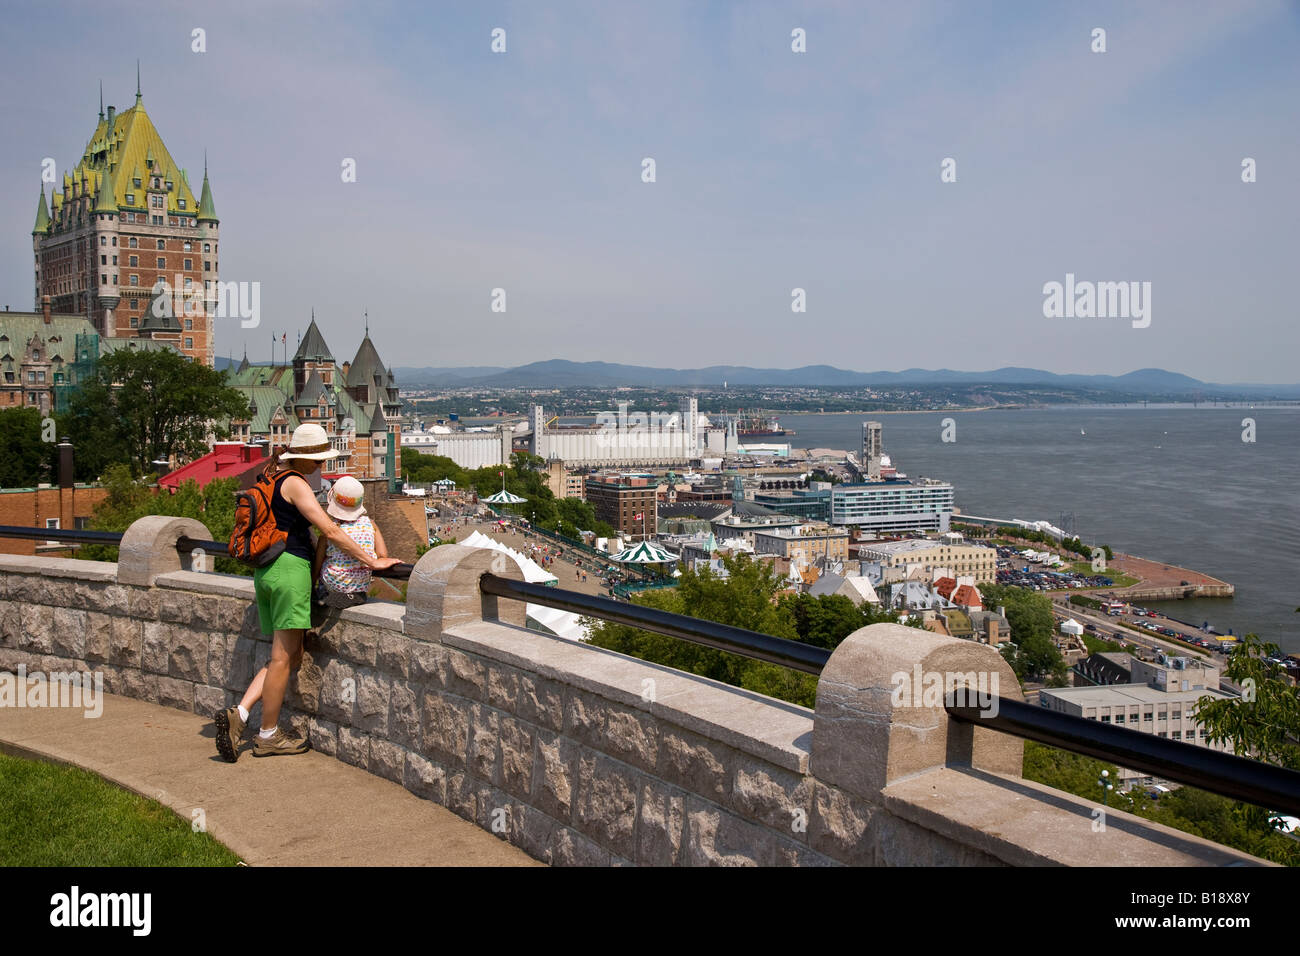 Young mother and daughter enjoy view of Quebec City and St Lawrence River from Citadelle, Quebec, Canada. - Stock Image